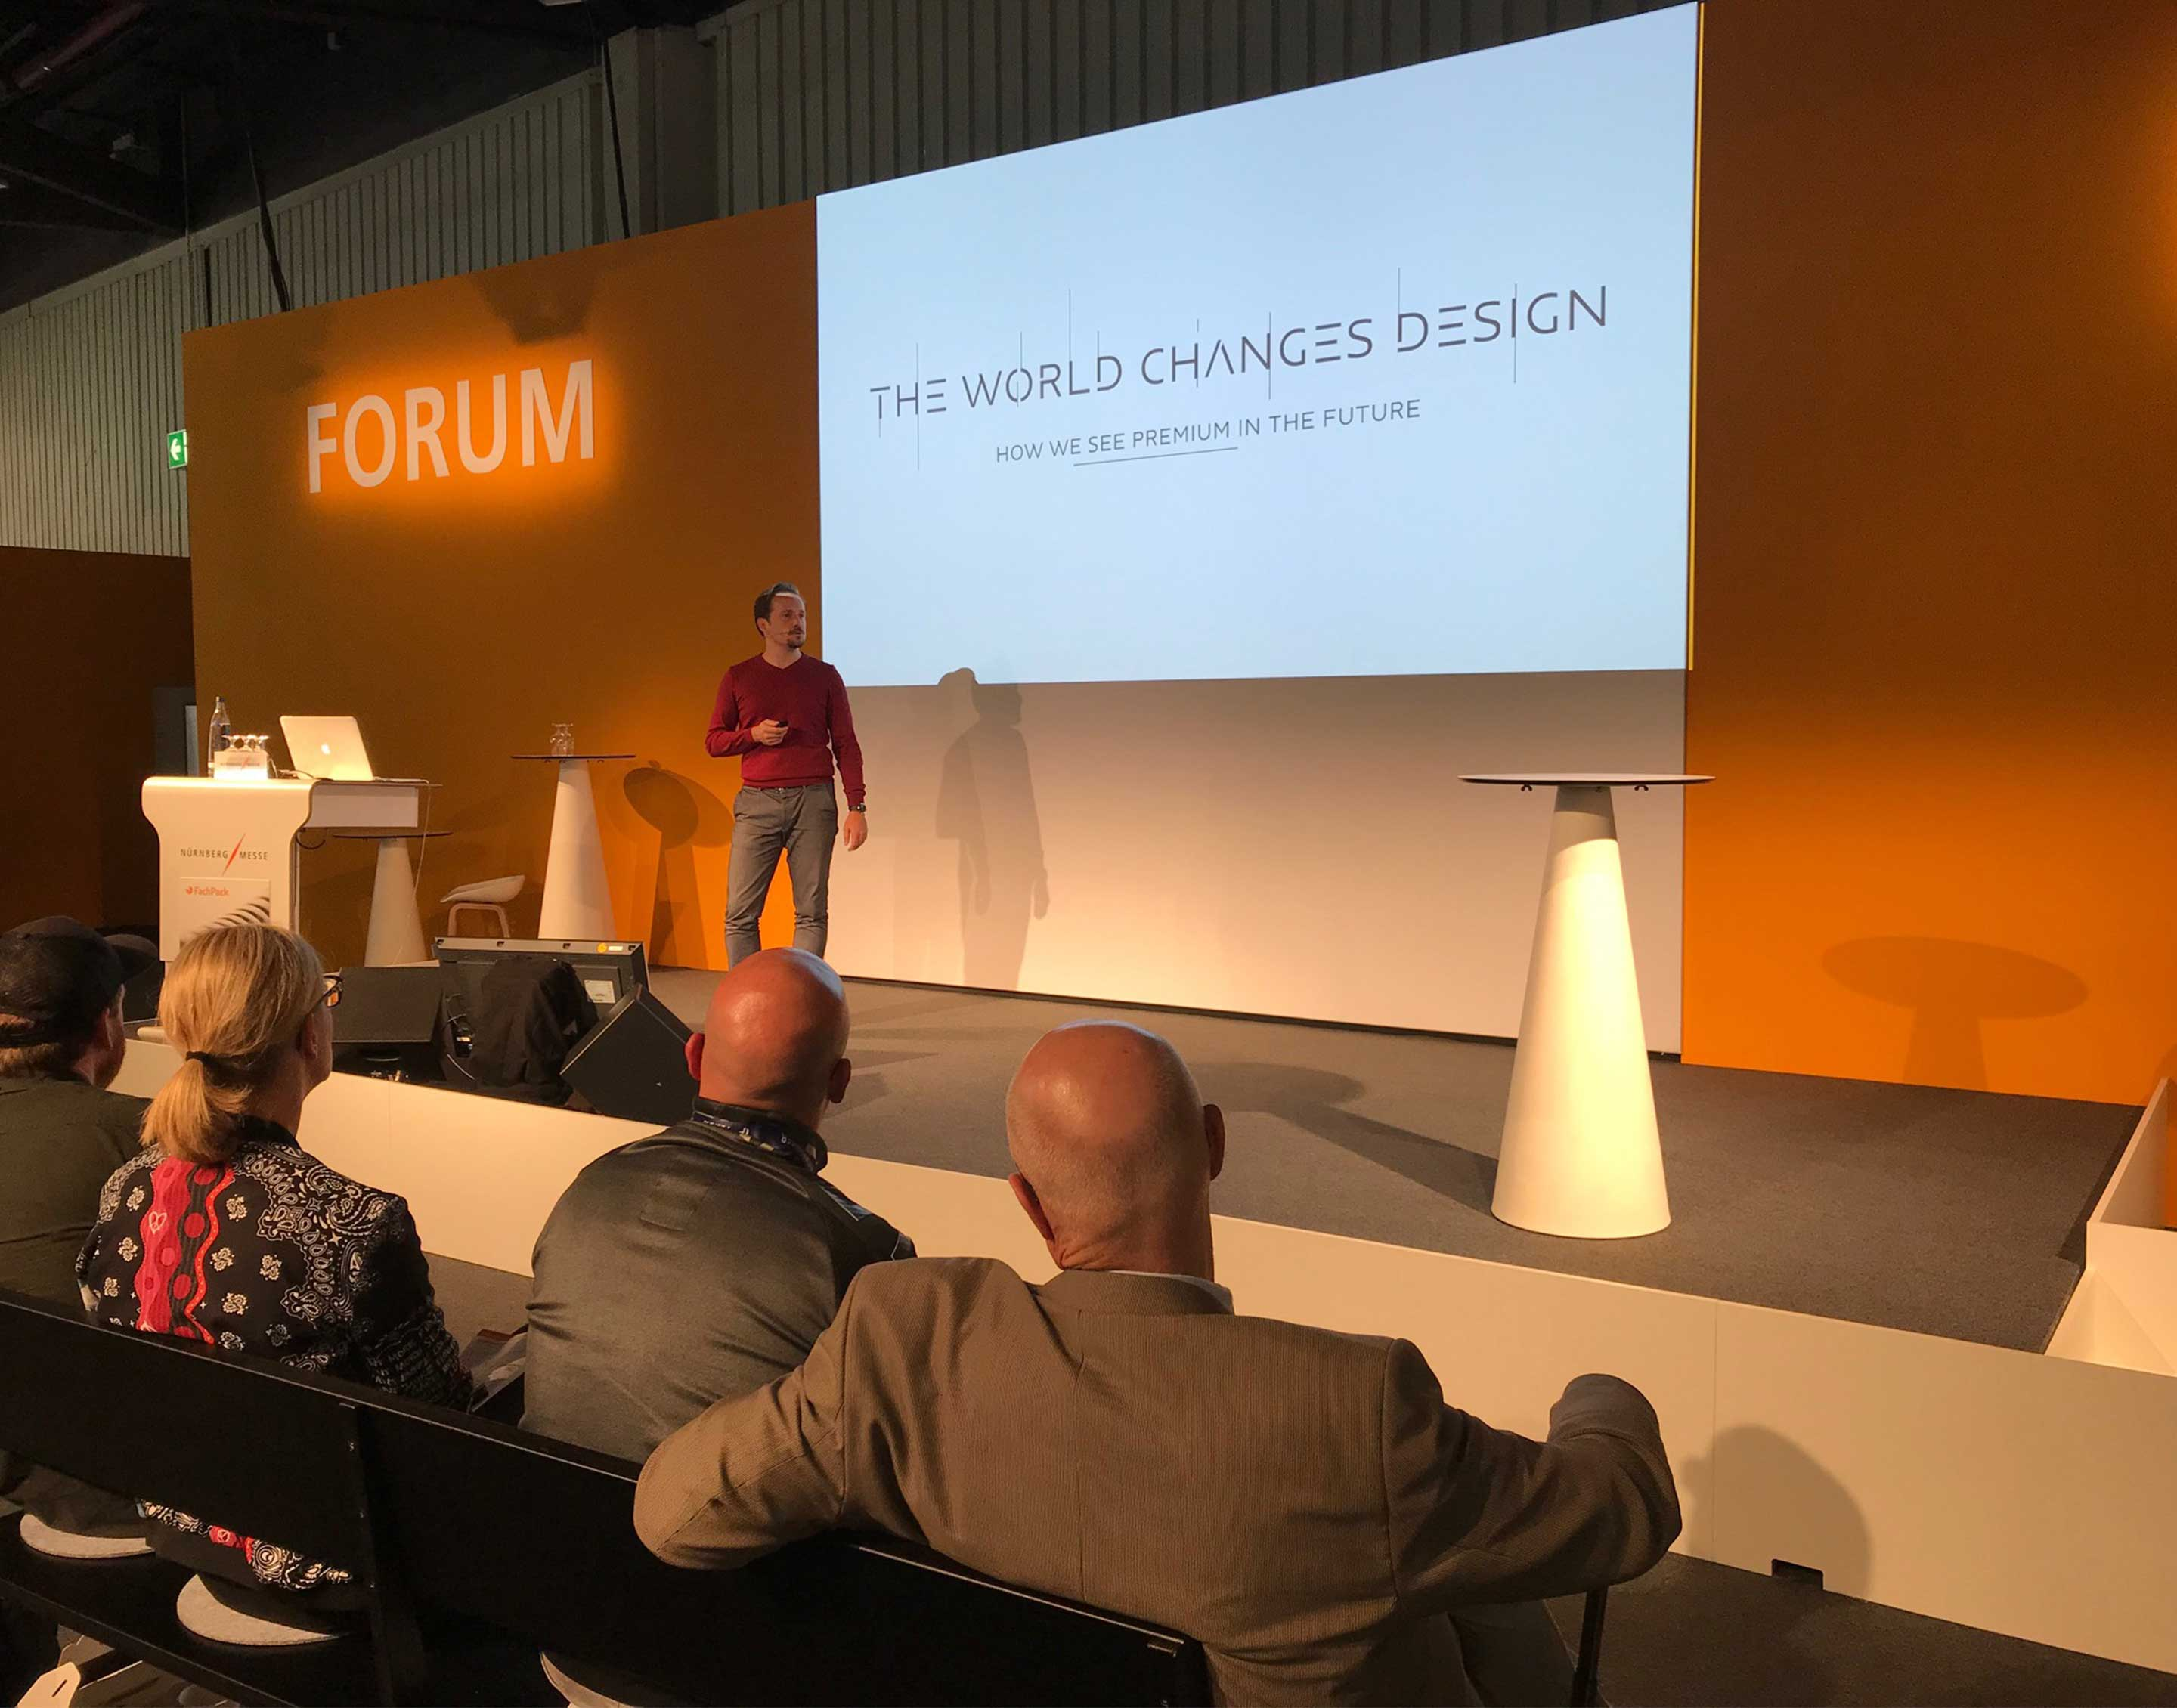 Daniel Graf on stage at FachPack 2019 presents his work on The World Changes Design